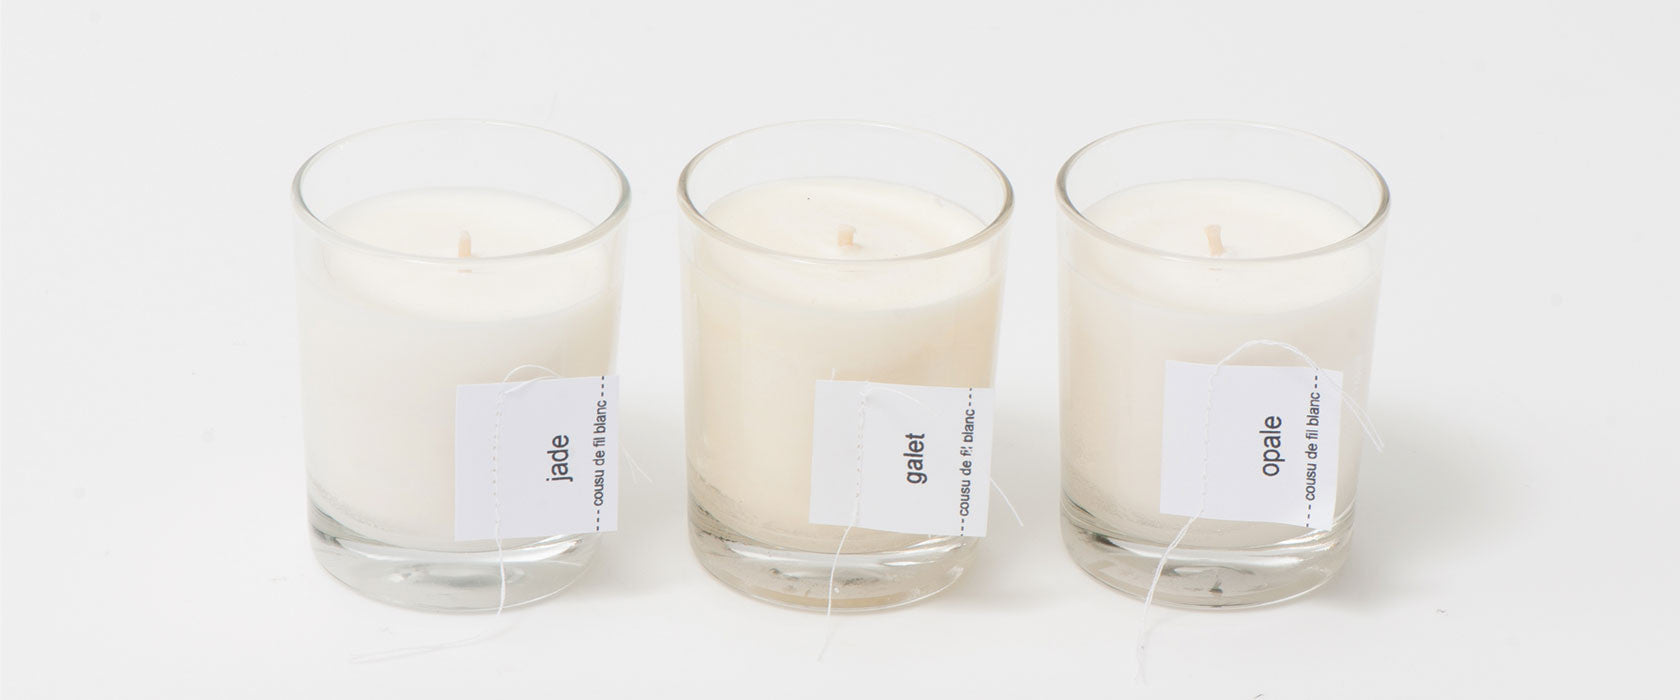 cousu de fil blanc candle stones collection